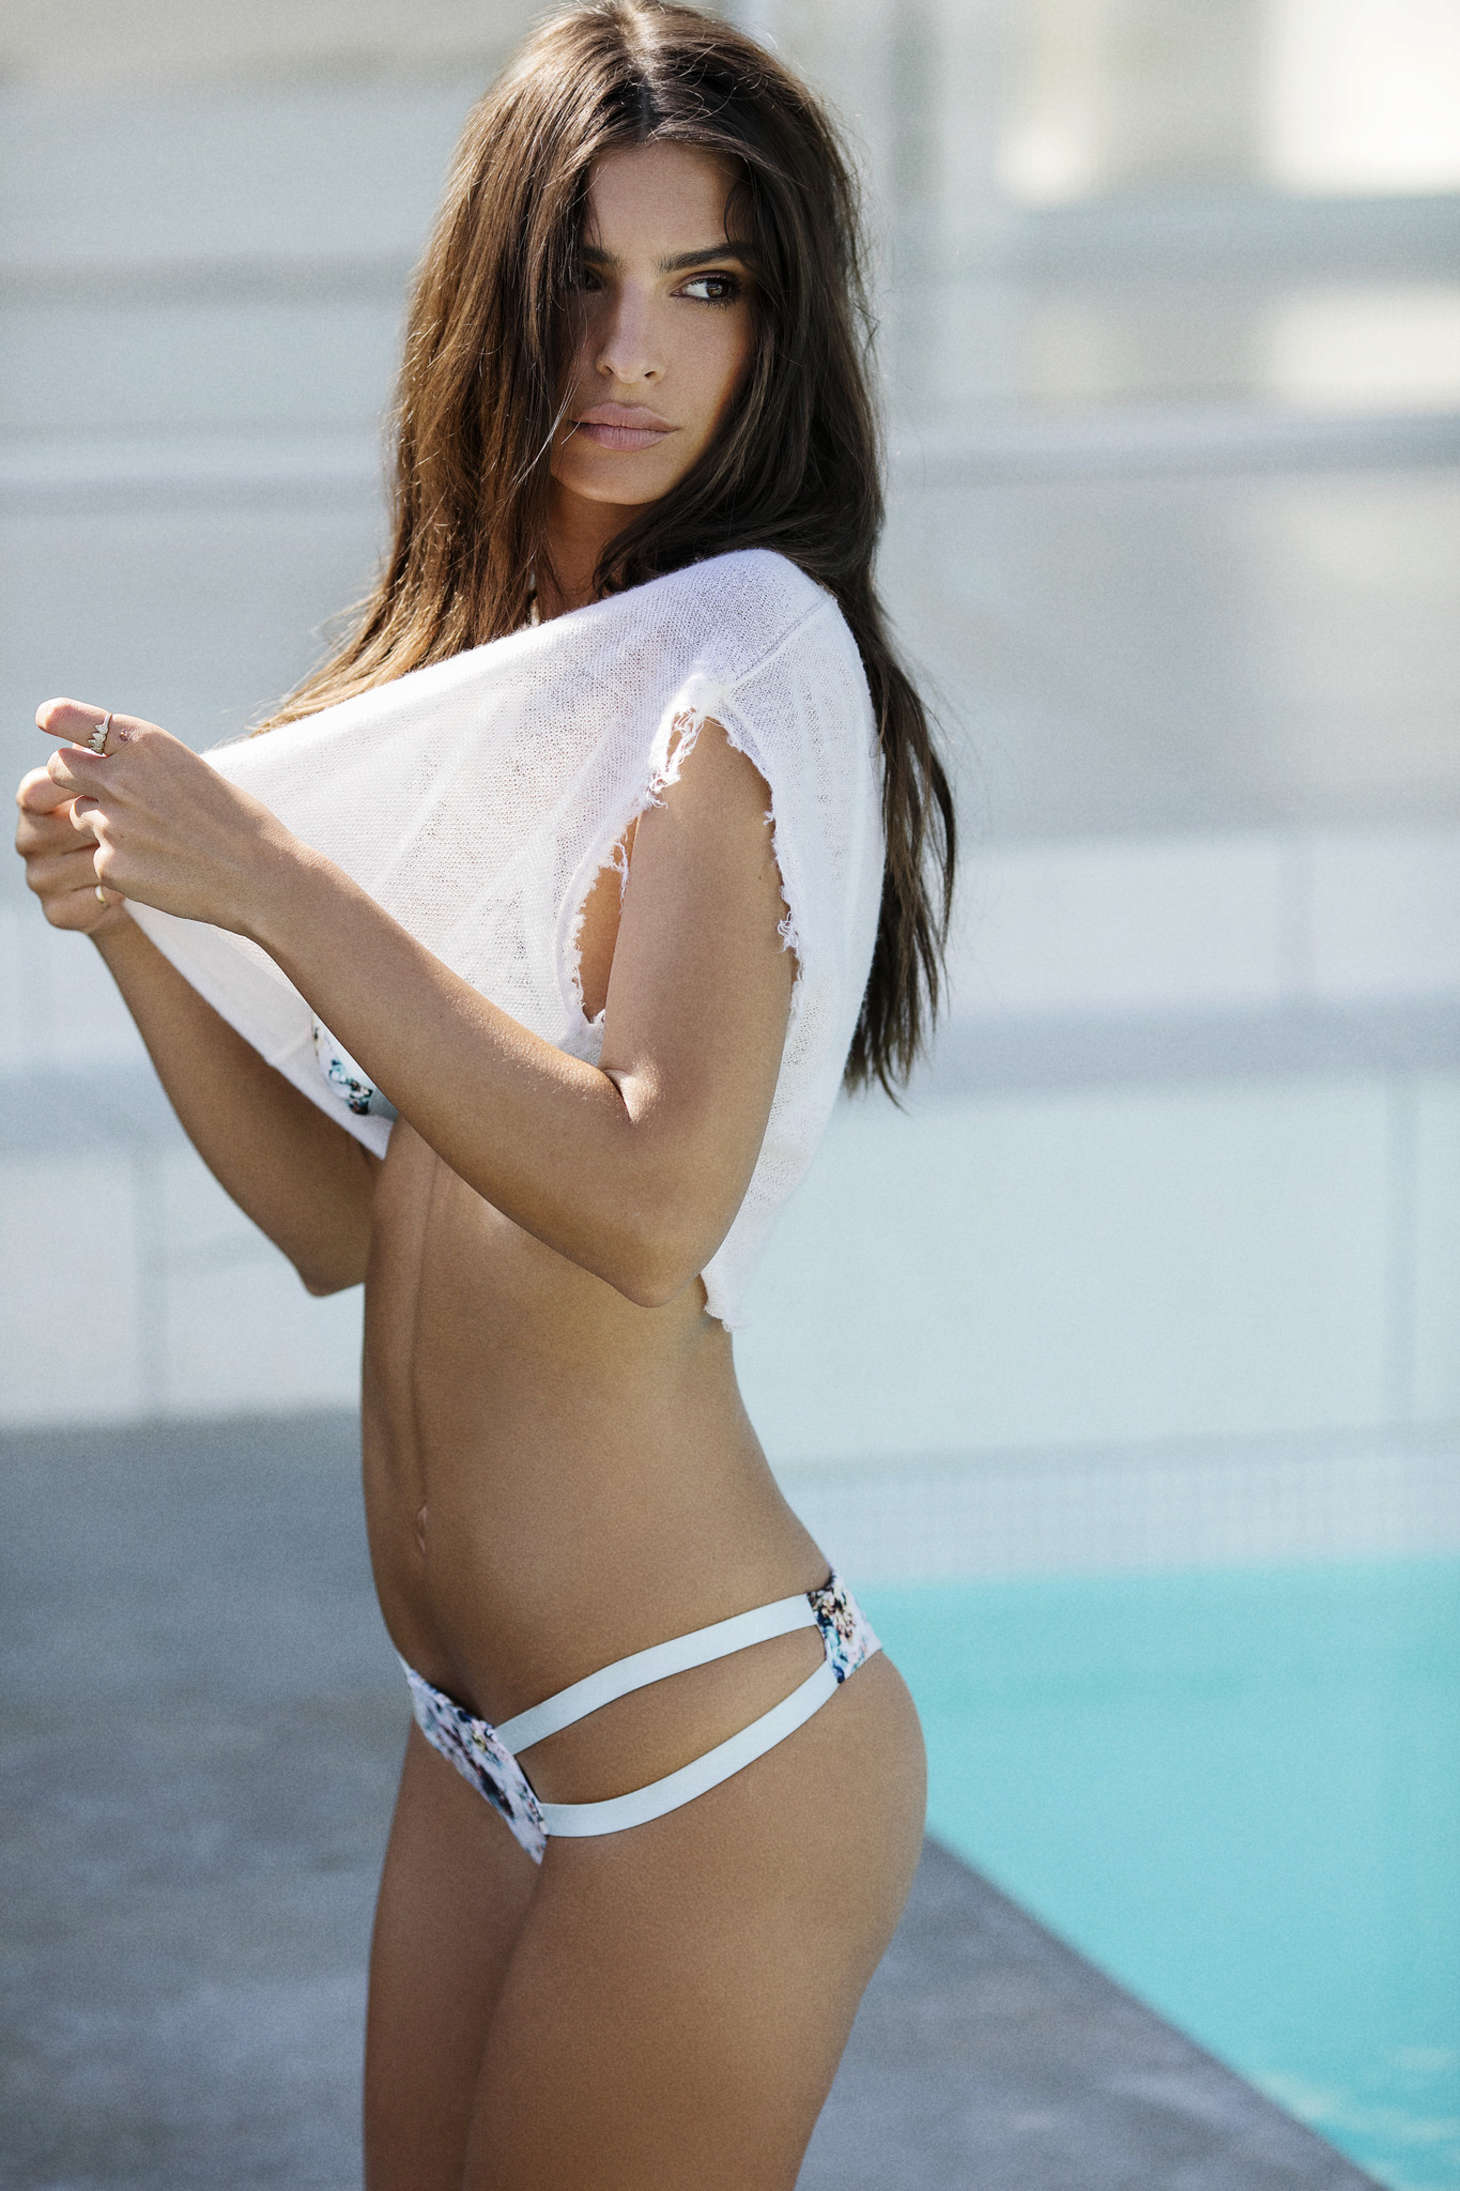 ratajkowski emily girl bikini beach sexy fashion model summer lingerie water